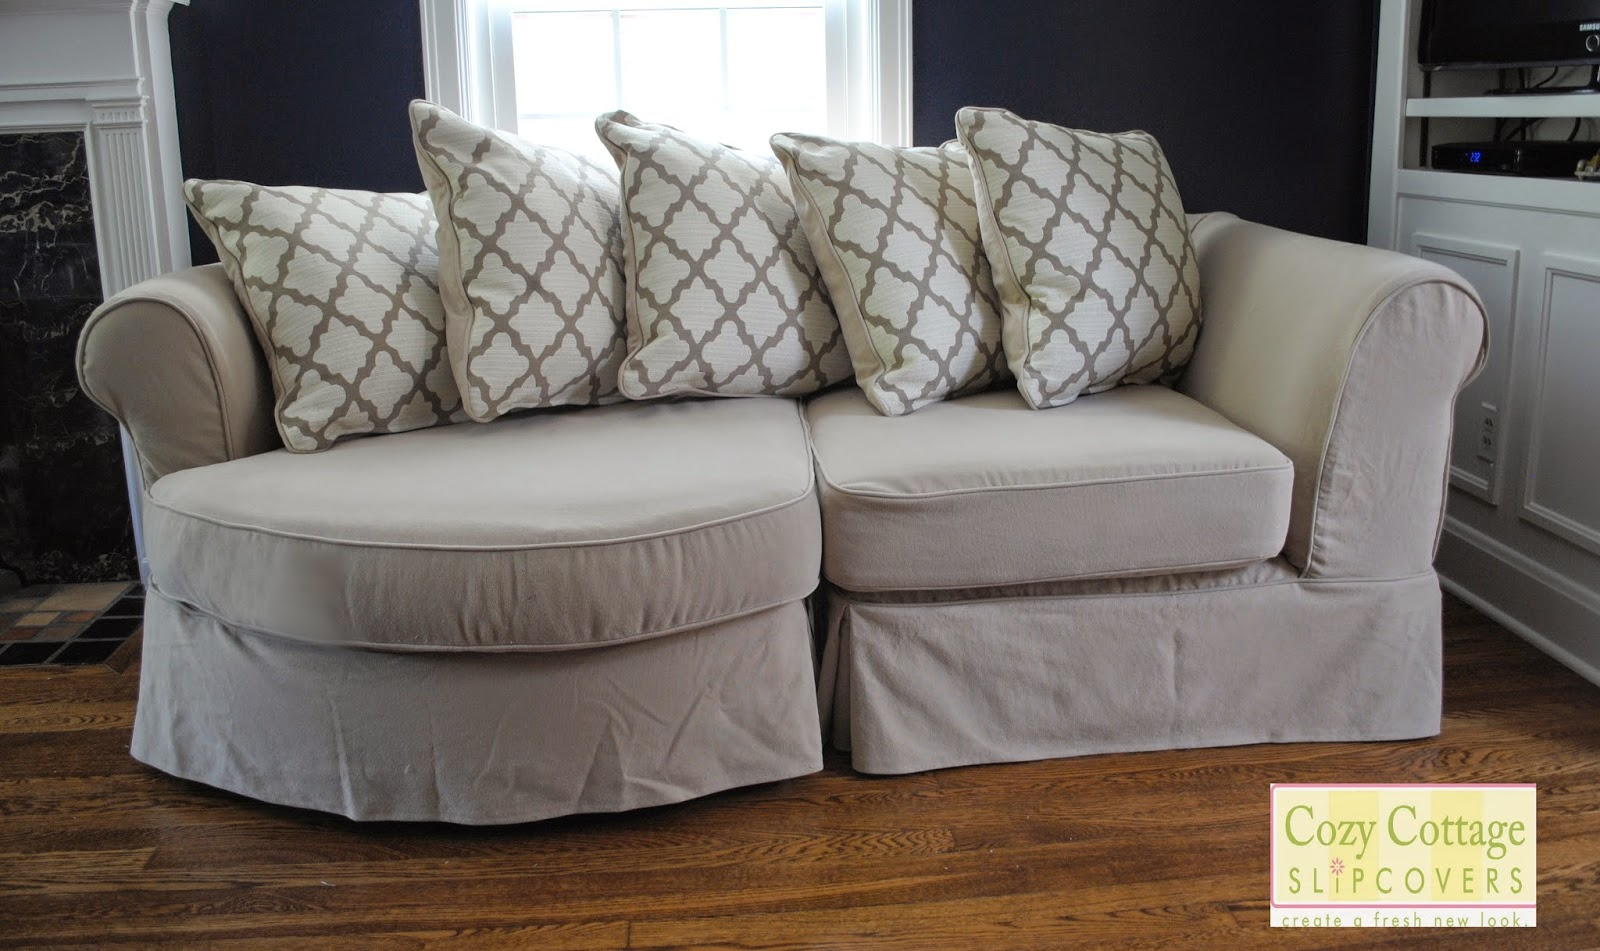 Cozy Cottage Slipcovers Small Sectional Slipcover